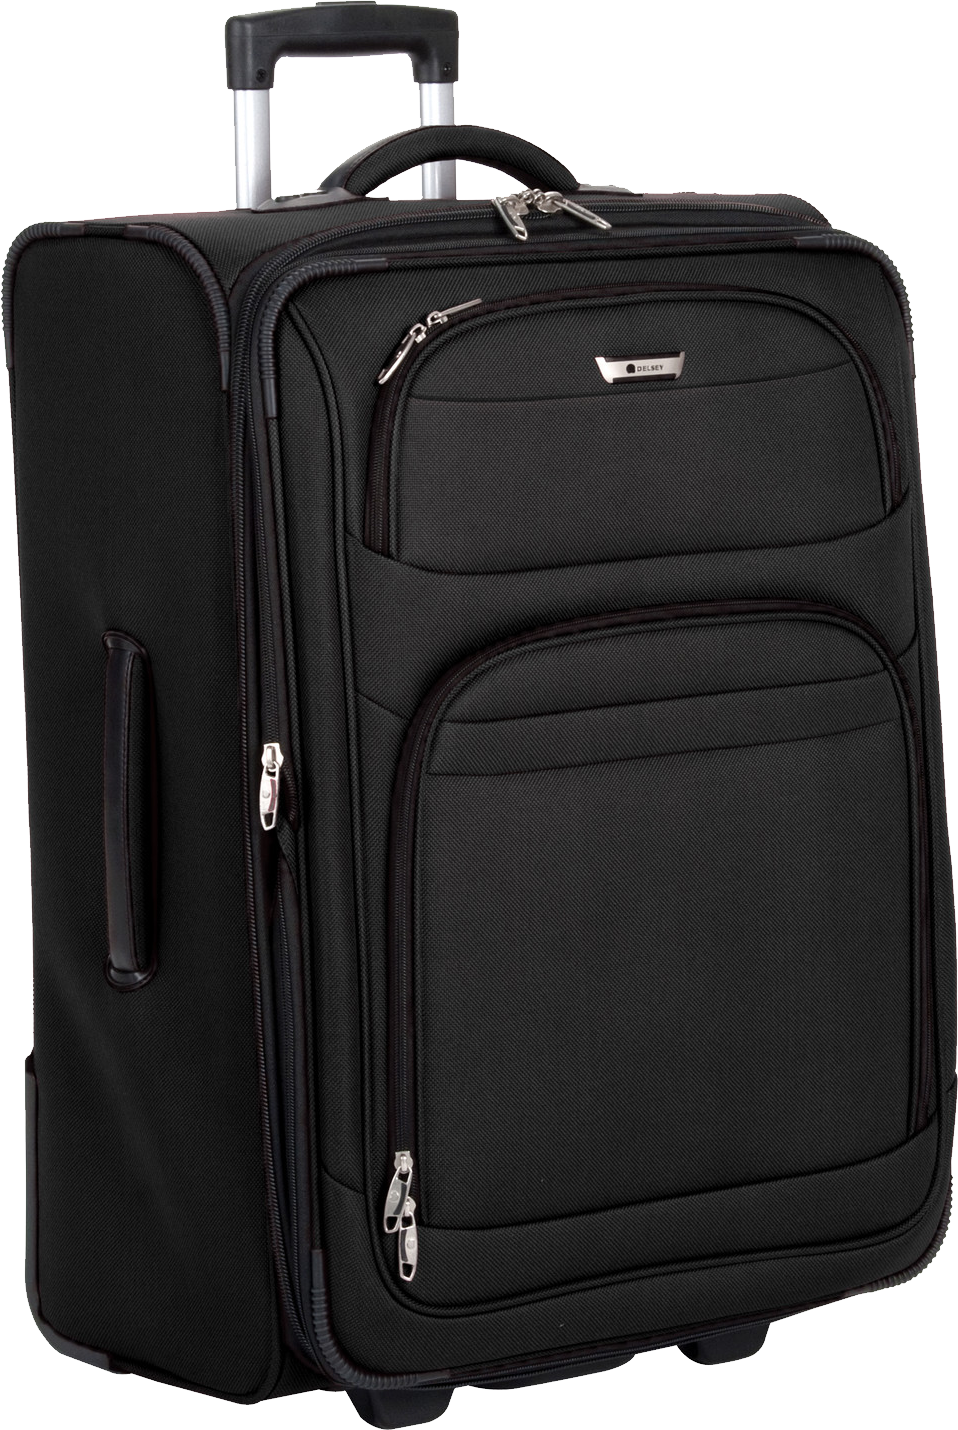 luggage png images are download #35082